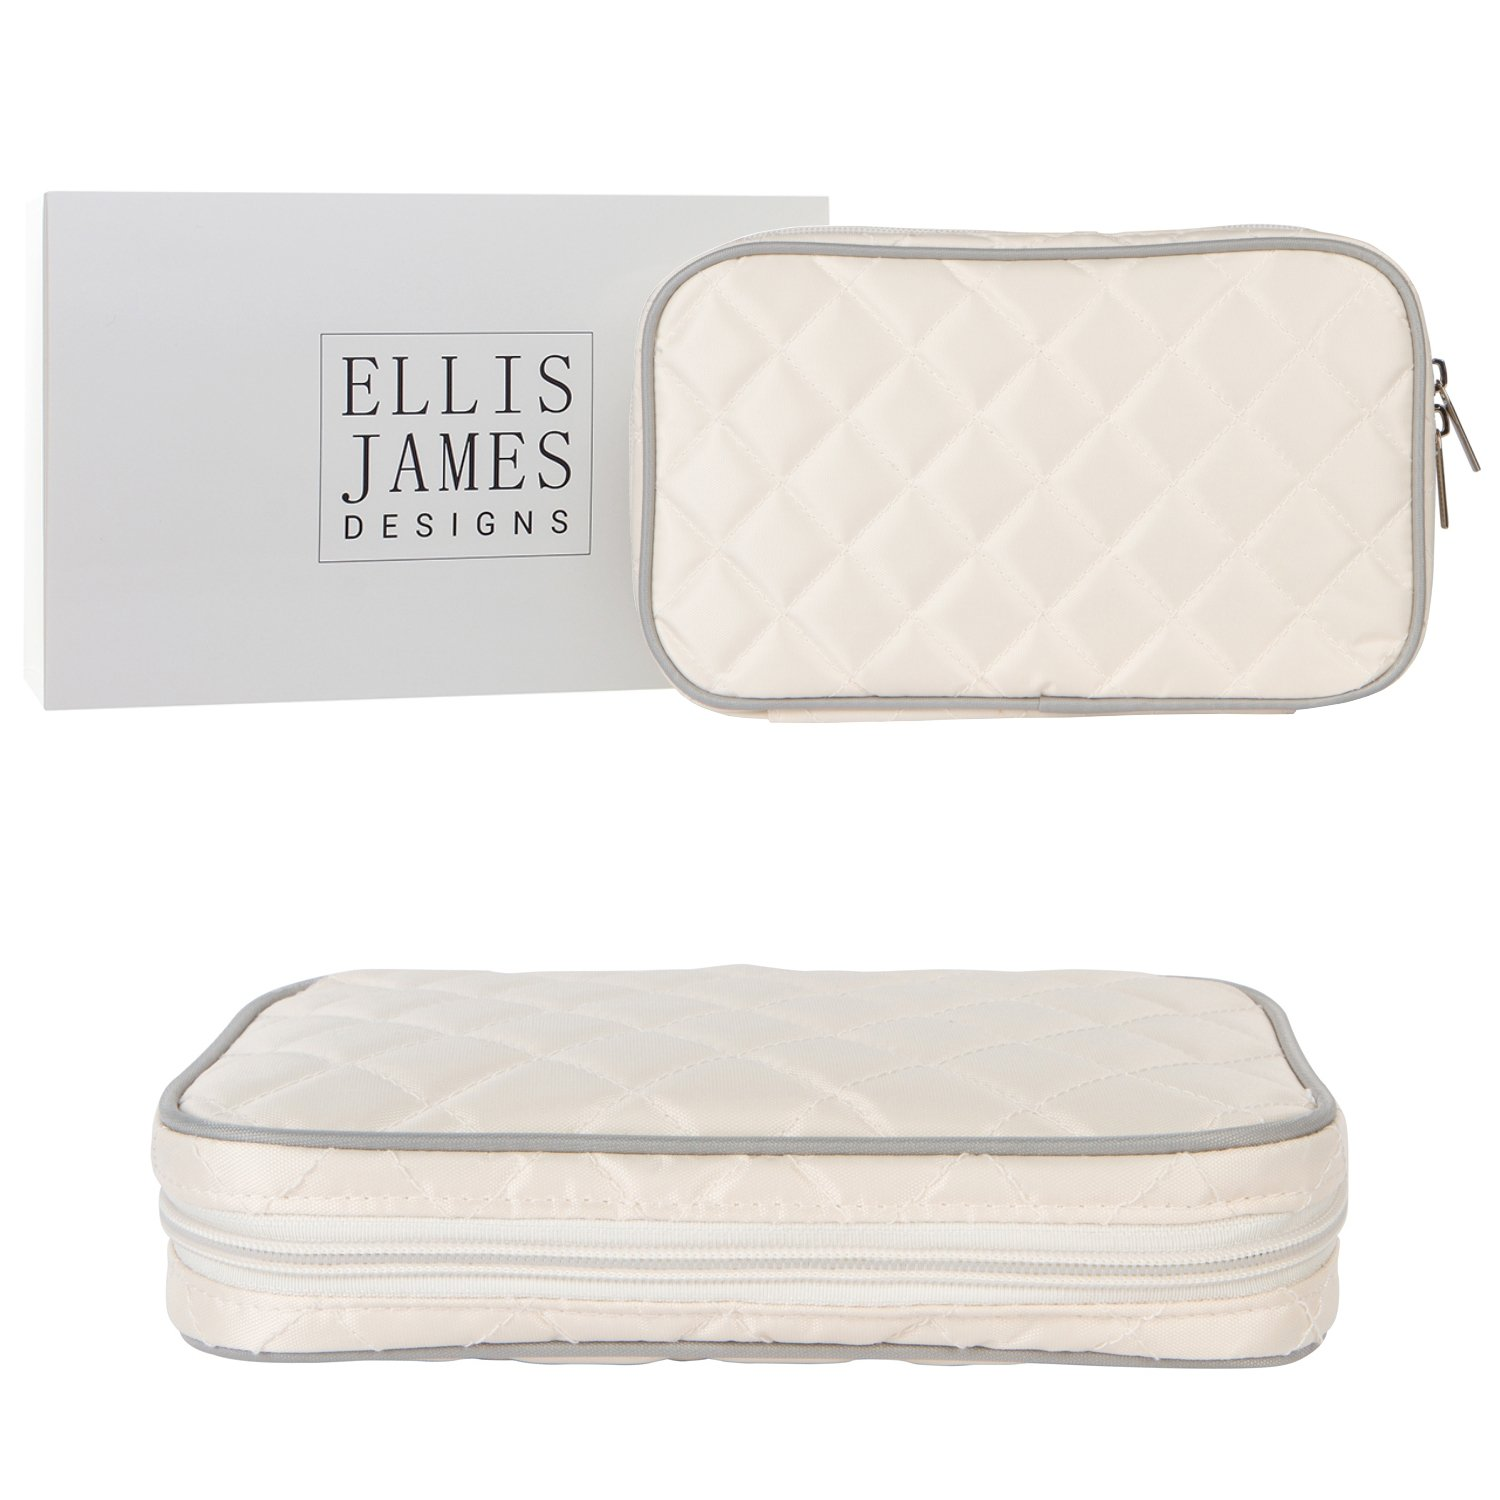 Ellis James Designs Quilted Travel Jewellery Organiser Bag Case - Grey - Soft Padded Travelling Jewelry Roll Pouch Wrap with Compartments and Necklace Holder ELJ0023